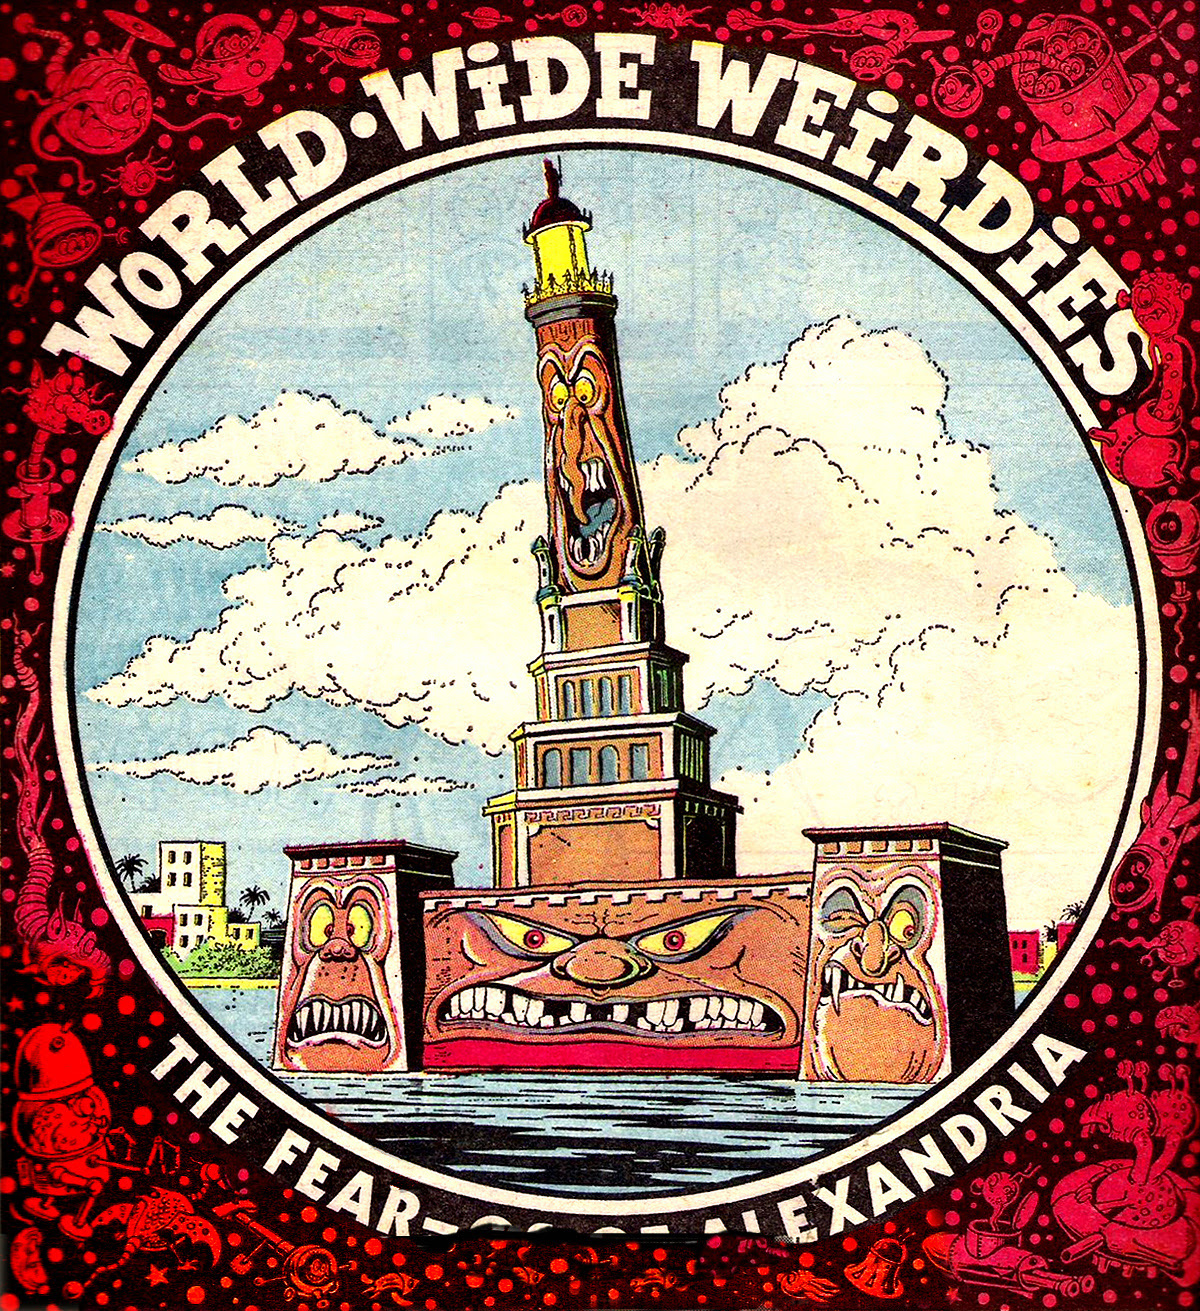 Ken Reid - World Wide Weirdies 82